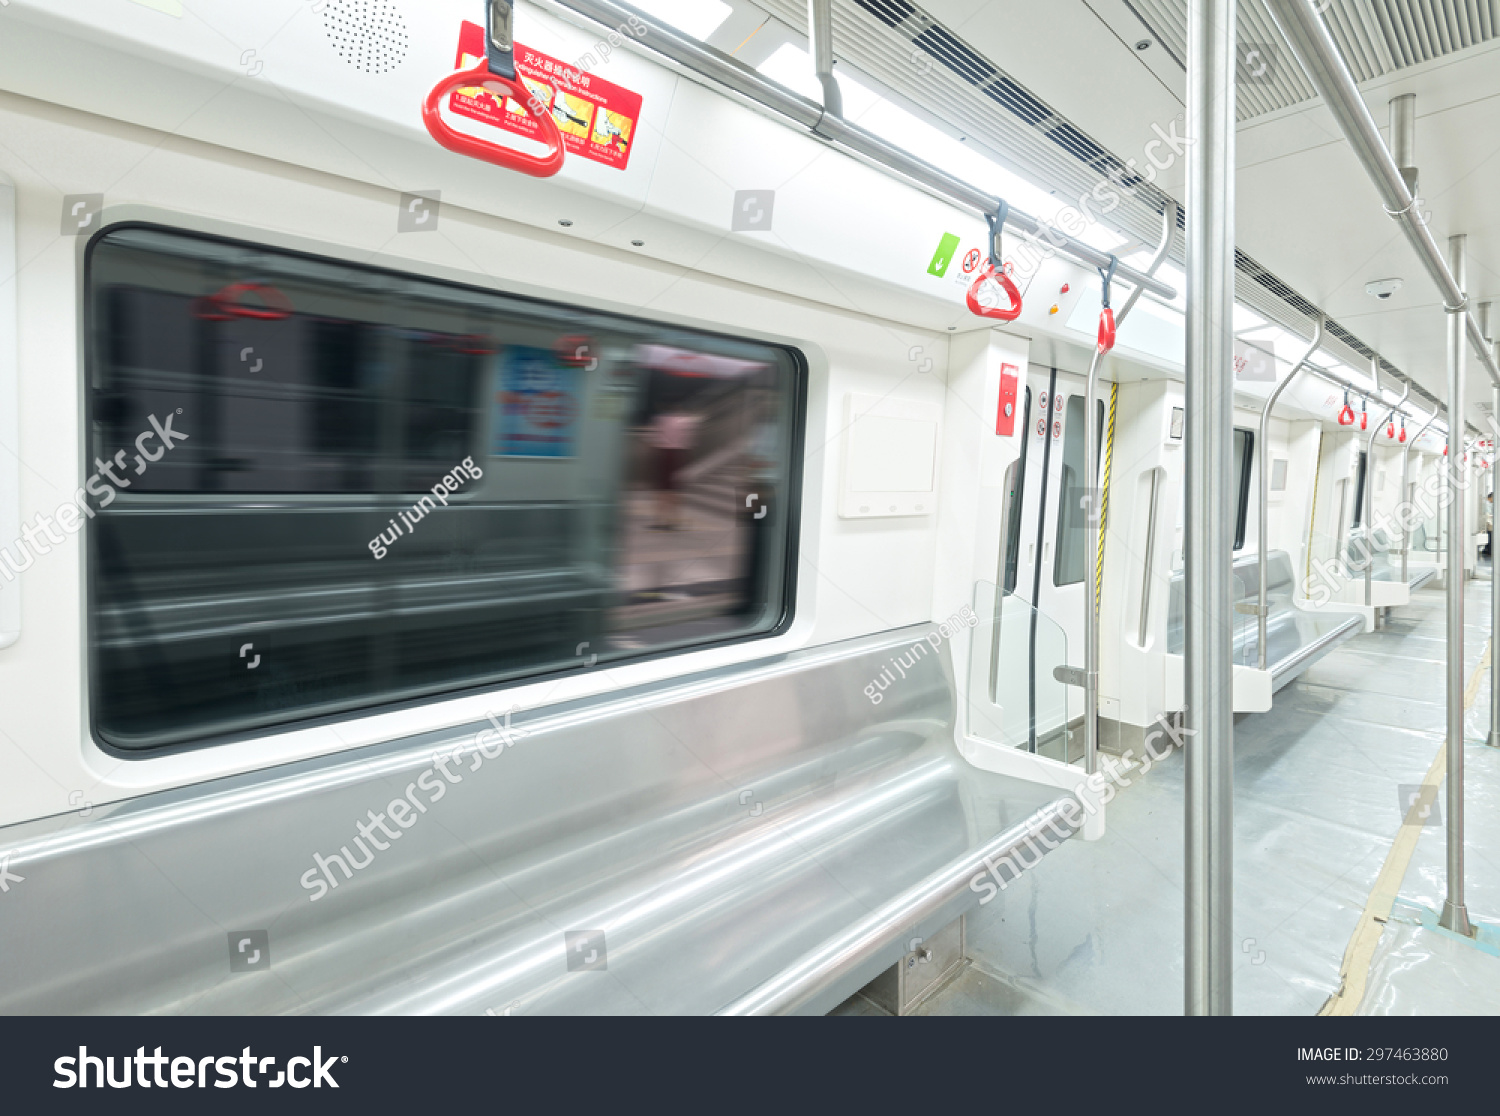 interior view subway car stock photo 297463880 shutterstock. Black Bedroom Furniture Sets. Home Design Ideas